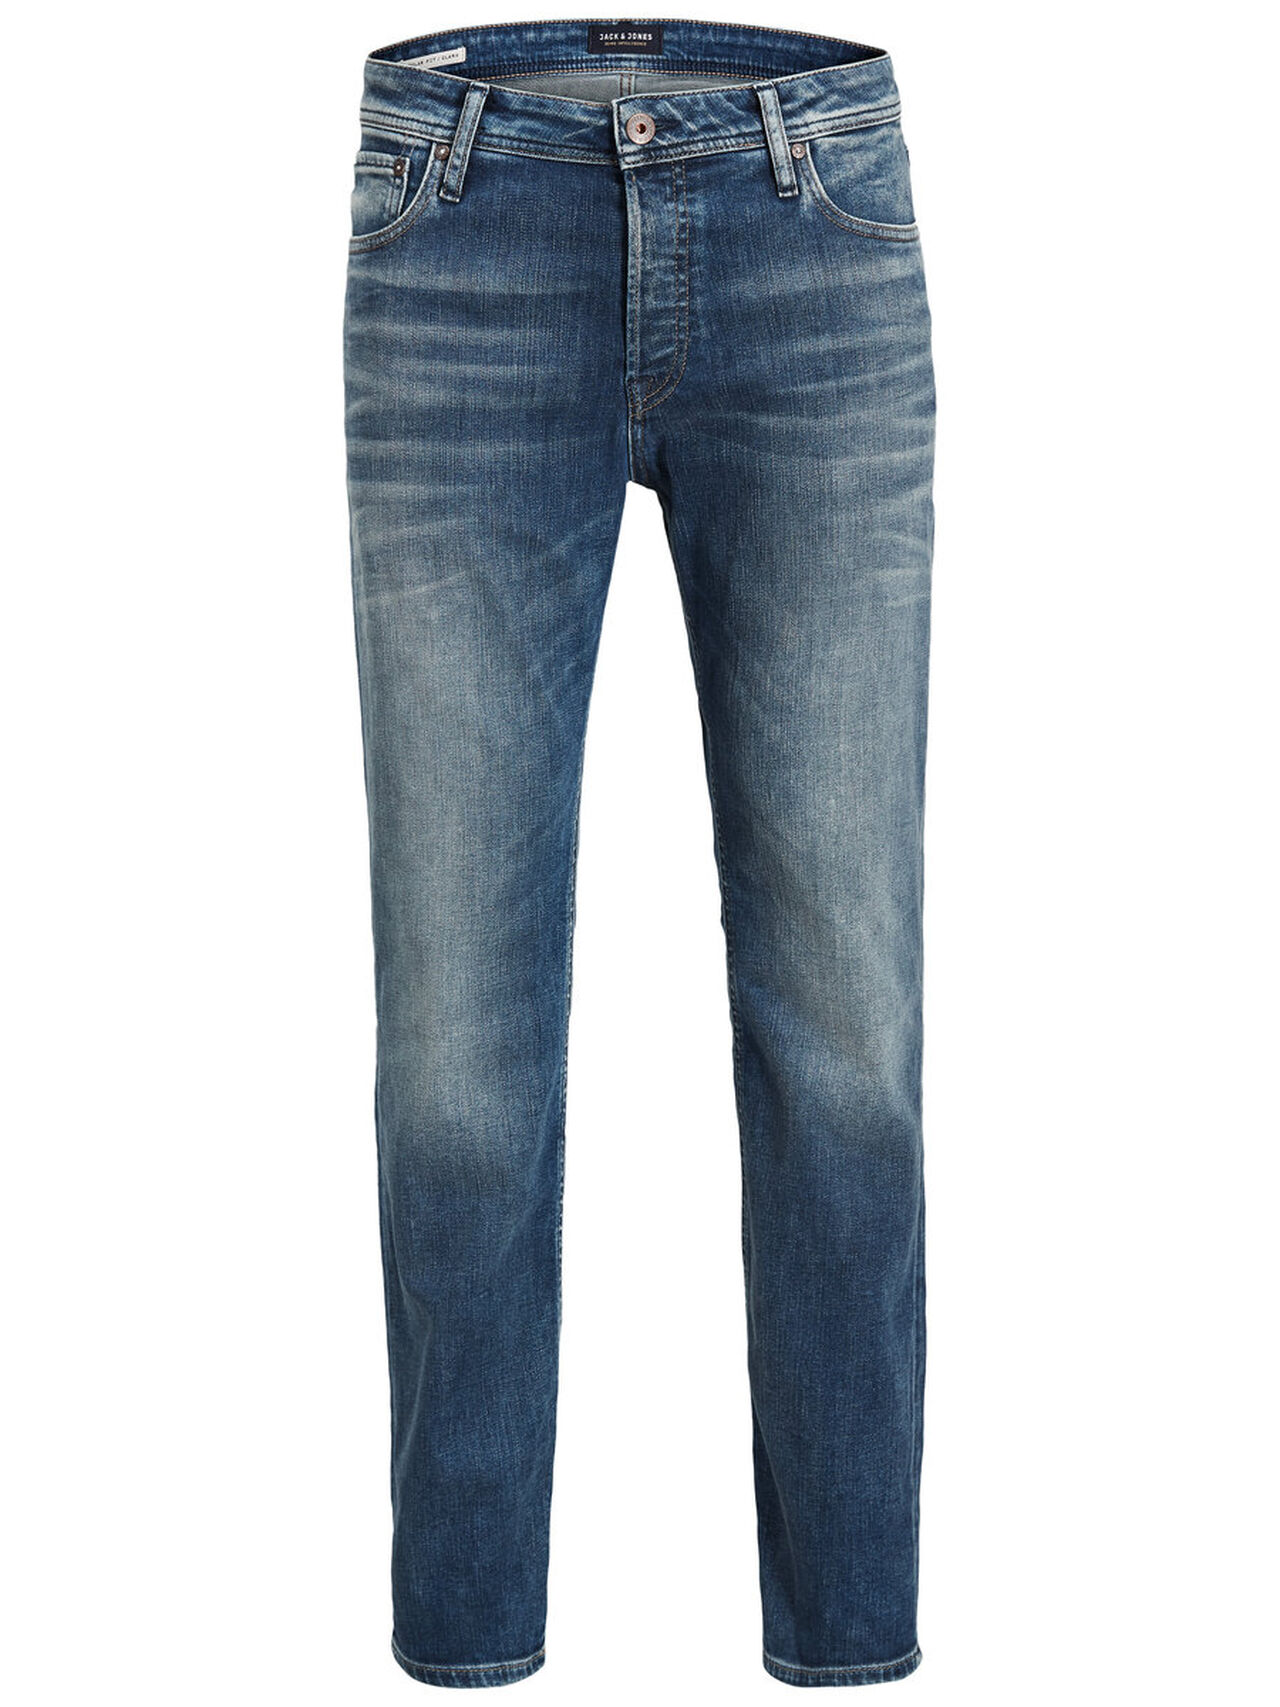 Clark Original Jos 317 Noos Regular Fit Jeans